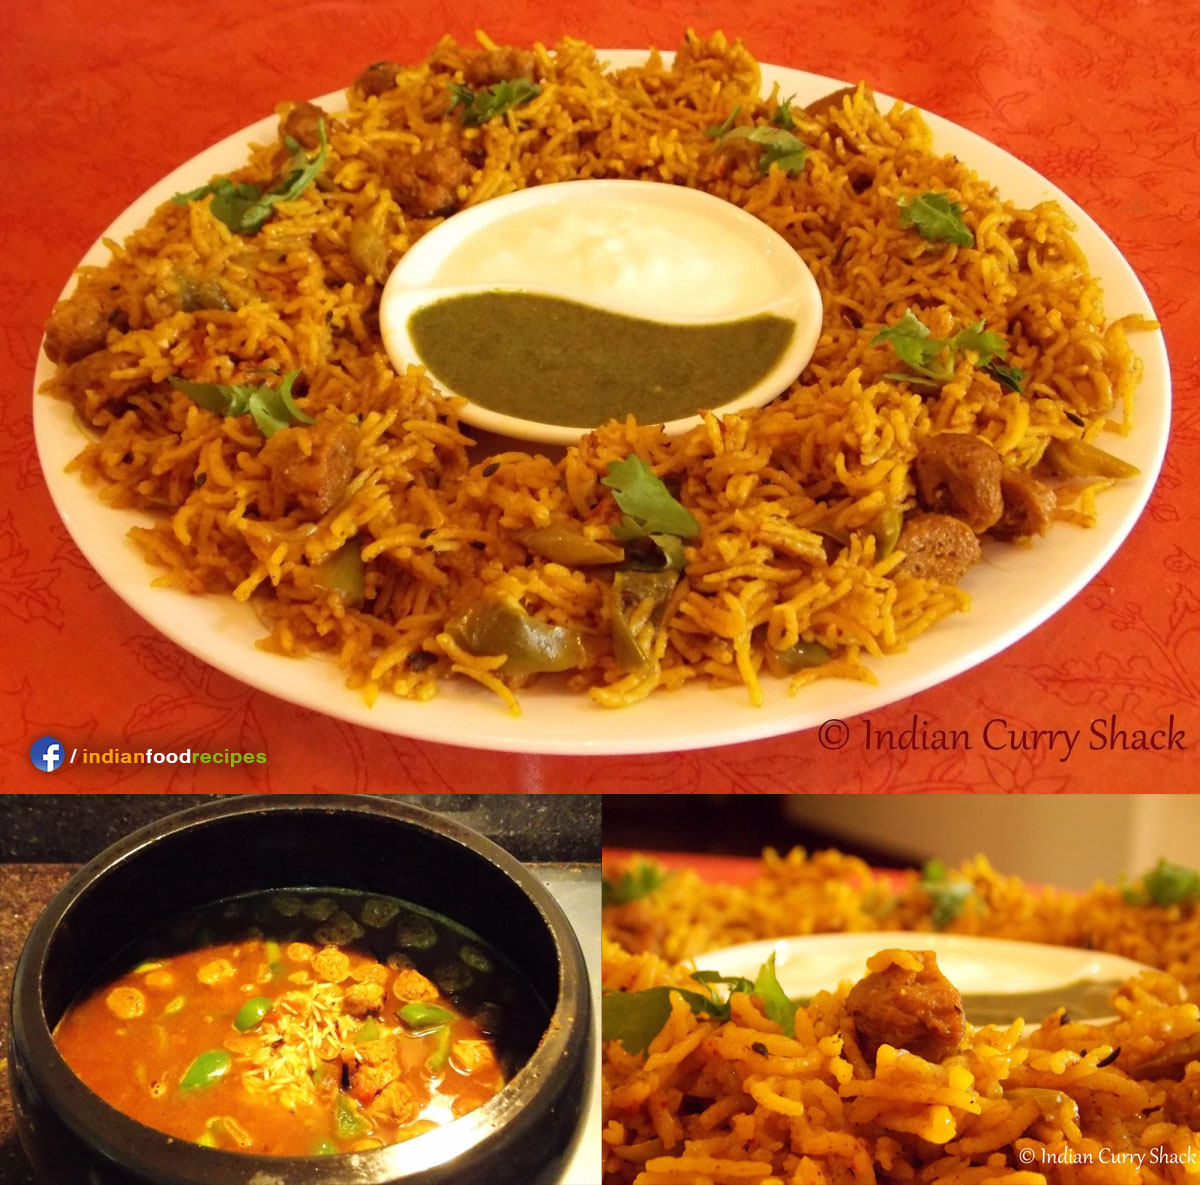 Tehri (Masala Rice) recipe step by step